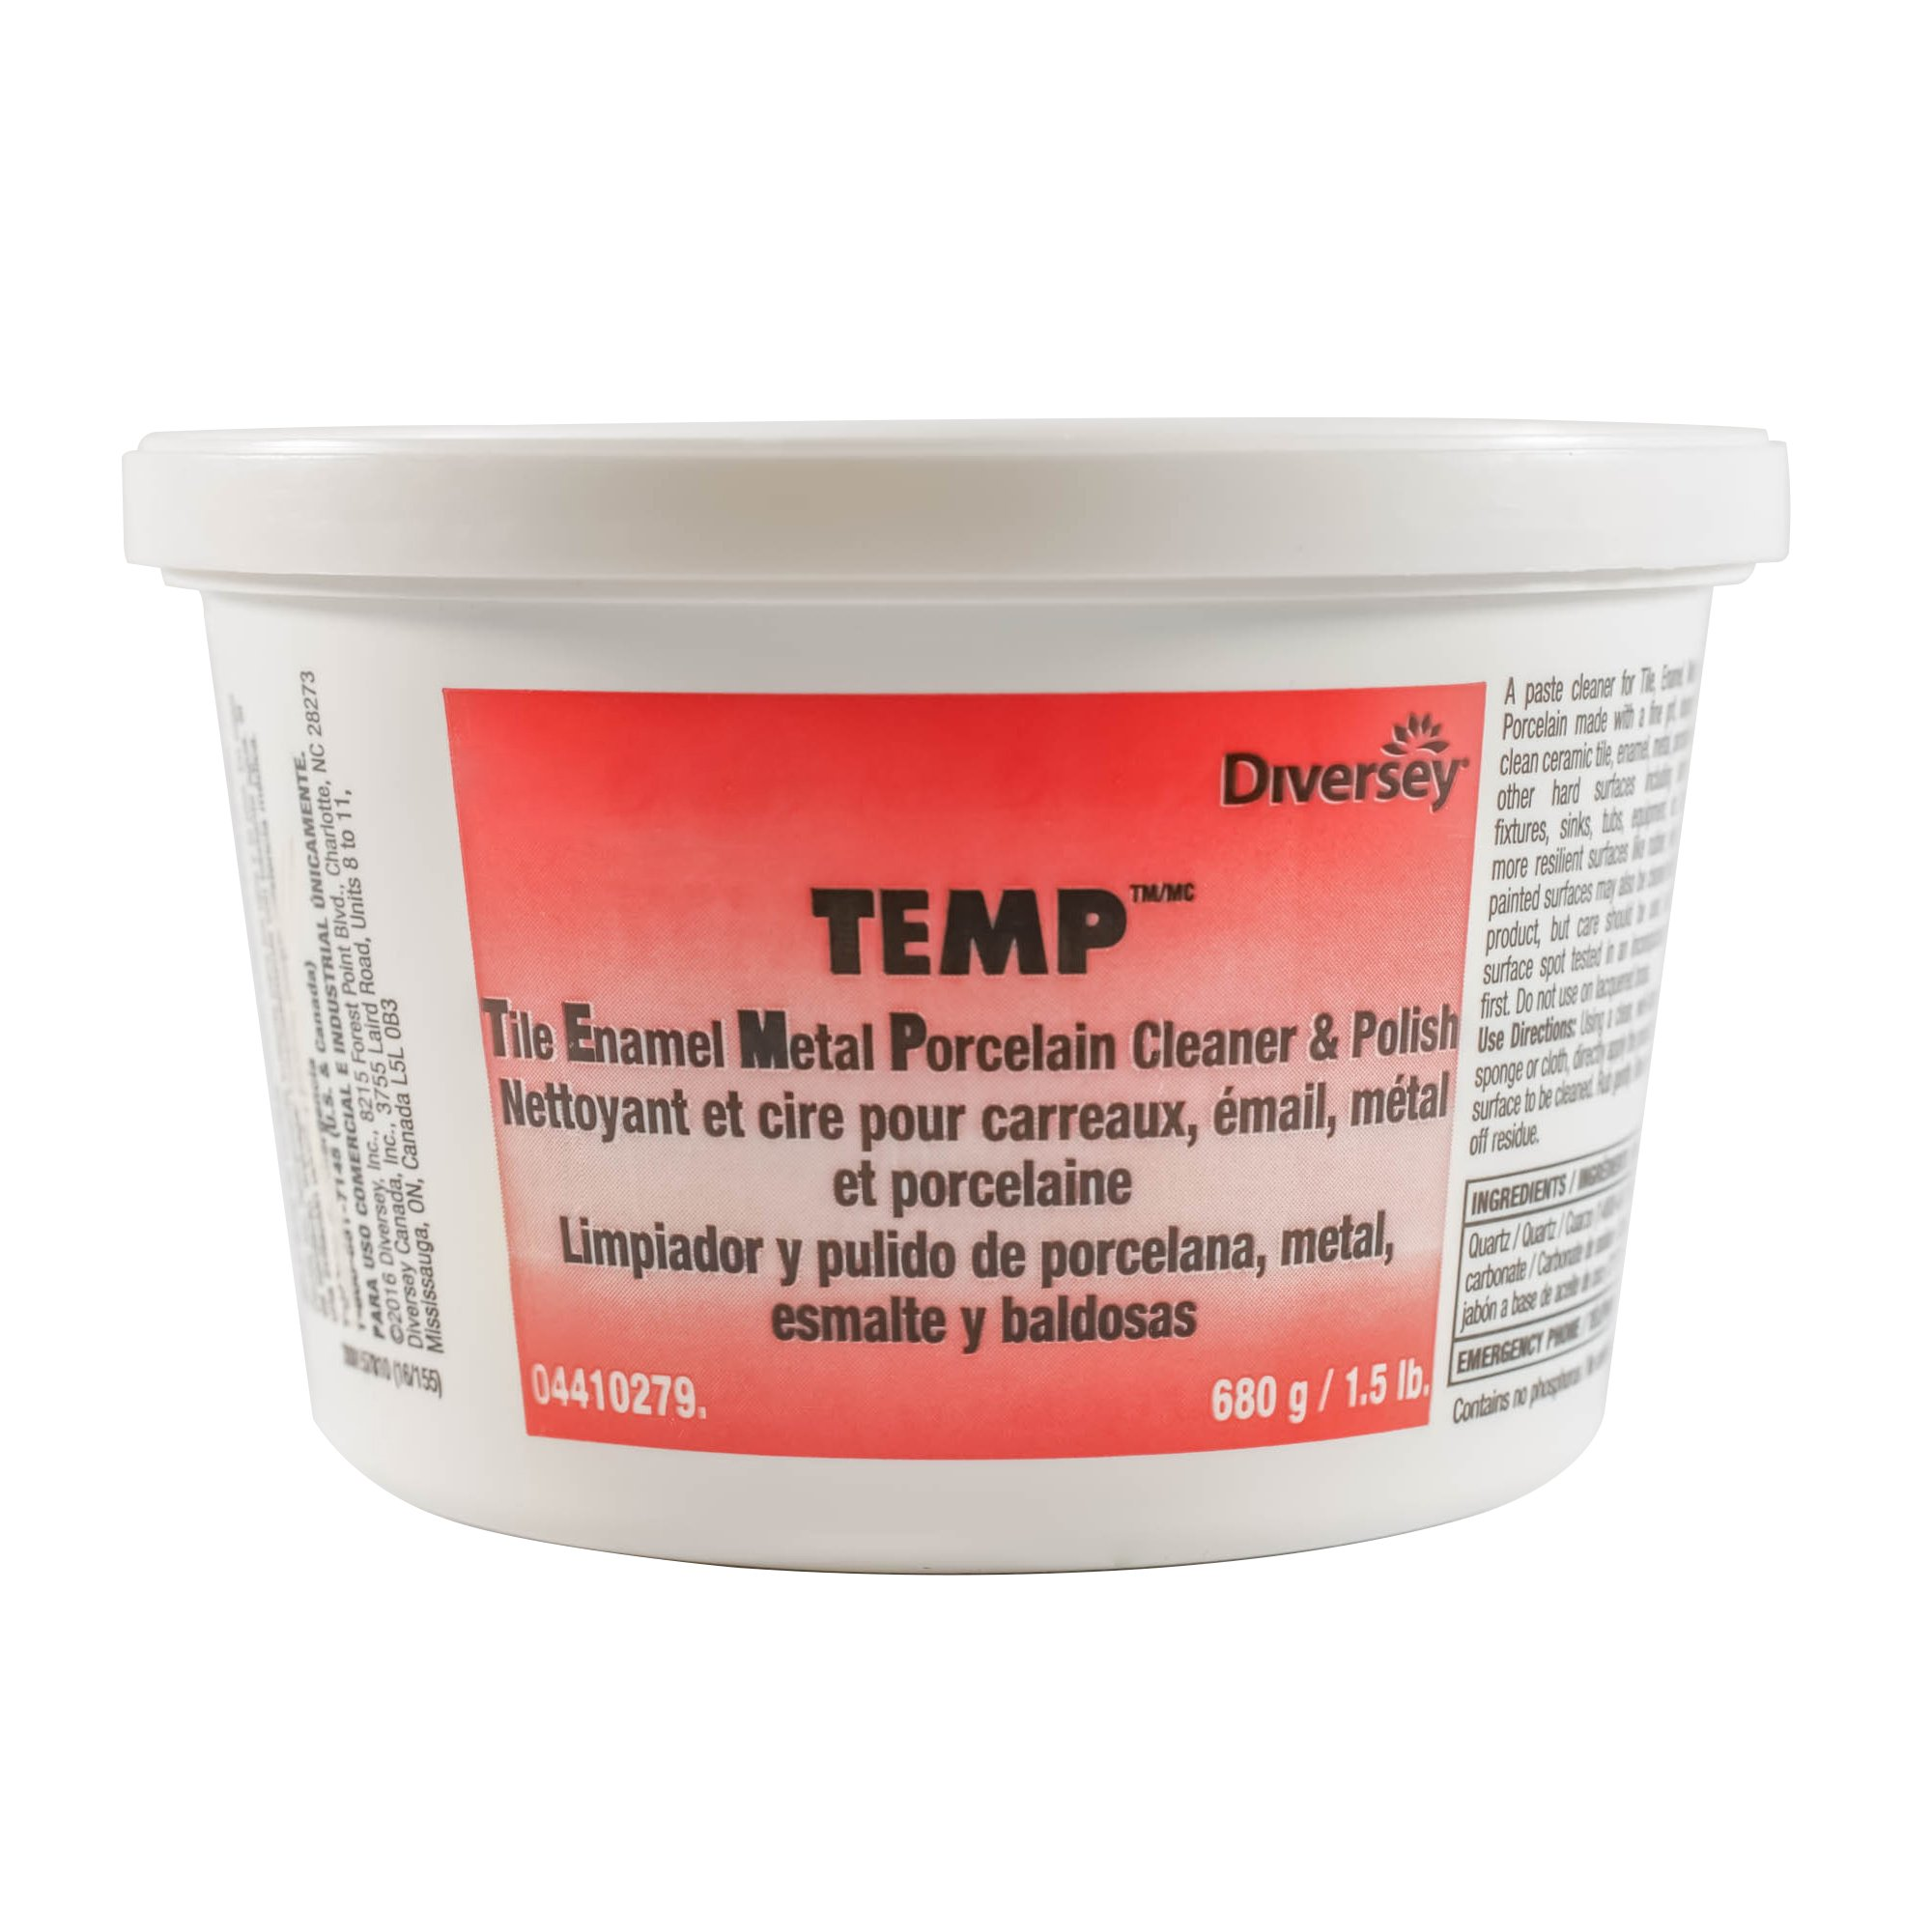 Diversey TEMP Professional Paste Cleaner and Polish (1.5-Pound Tub, 12-Pack)